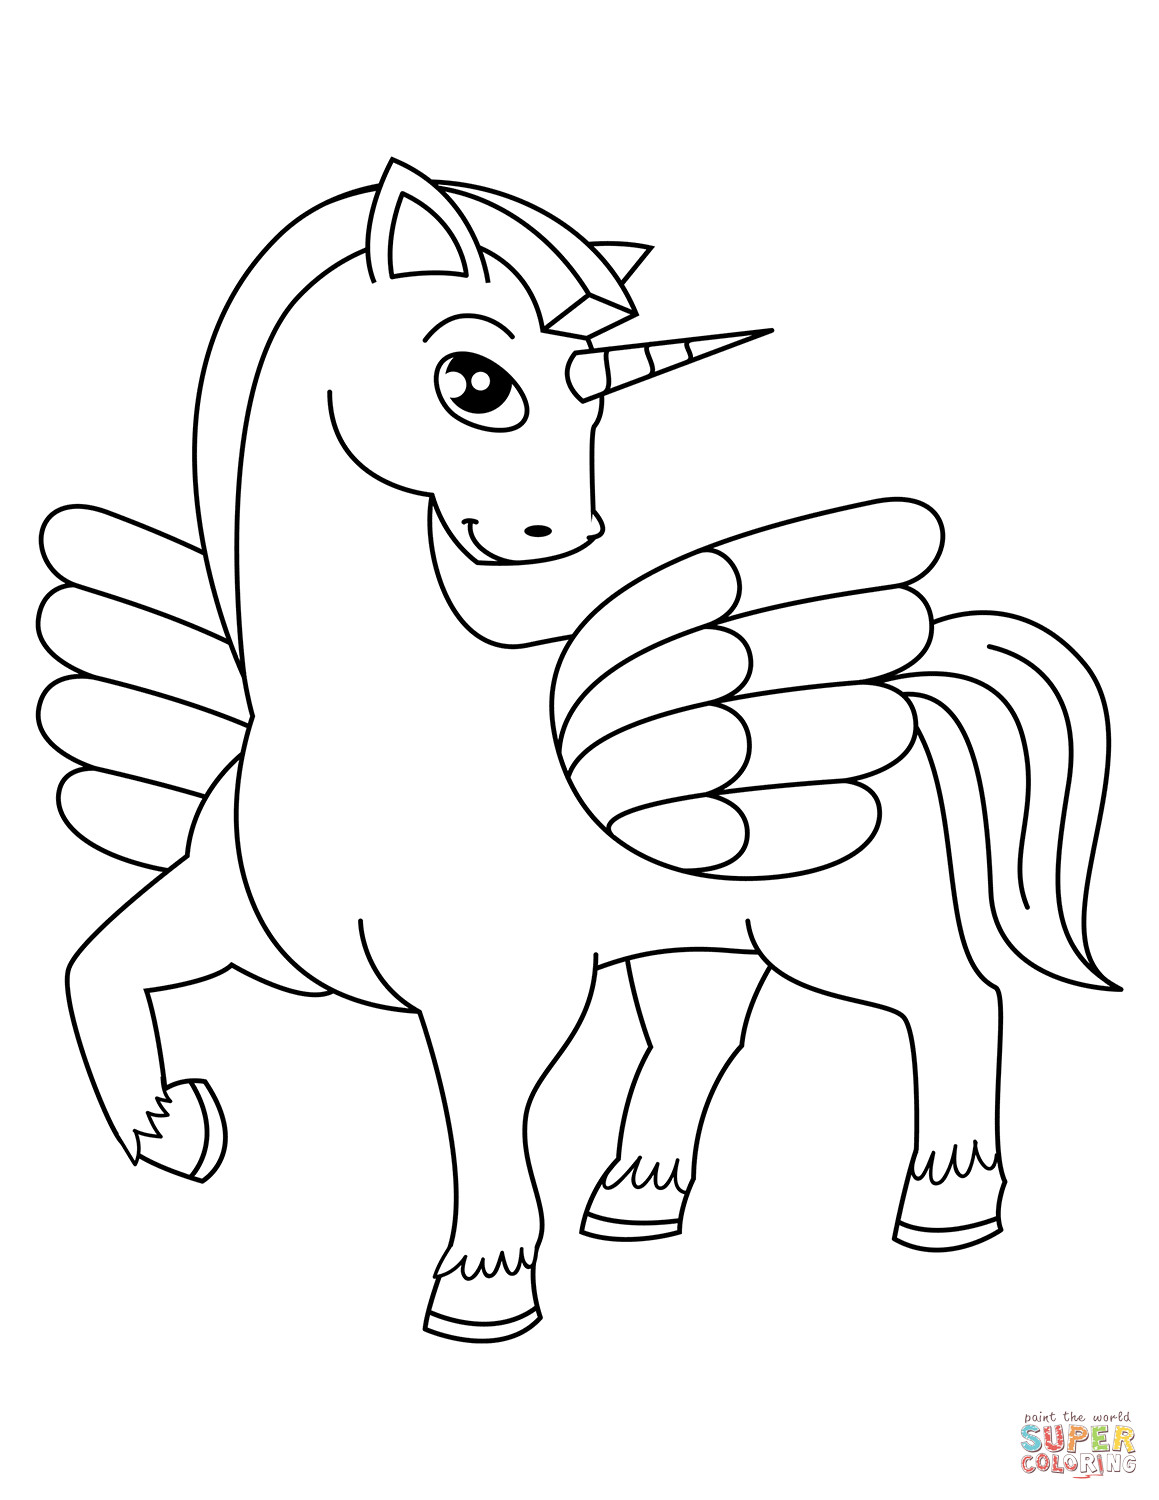 Unicorn Coloring Pages For Kids  Cute Winged Unicorn coloring page